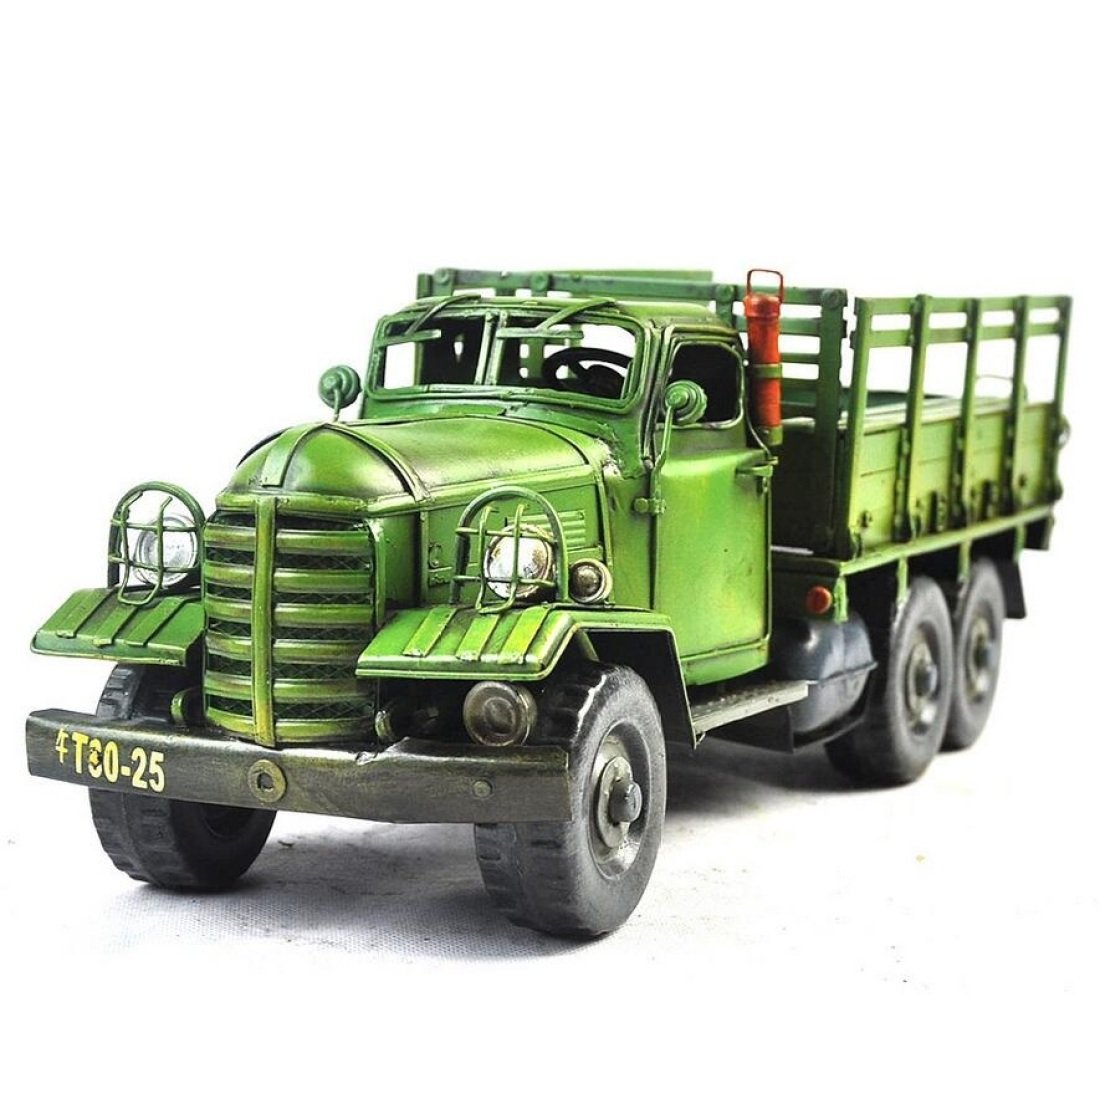 GL&G Retro manual Sheet metal car model Old-fashioned Six wheels Heavy truck bar Cafe decoration Tabletop Scenes Collectible Vehicles Ornaments Keepsakes,411314cm by GAOLIGUO